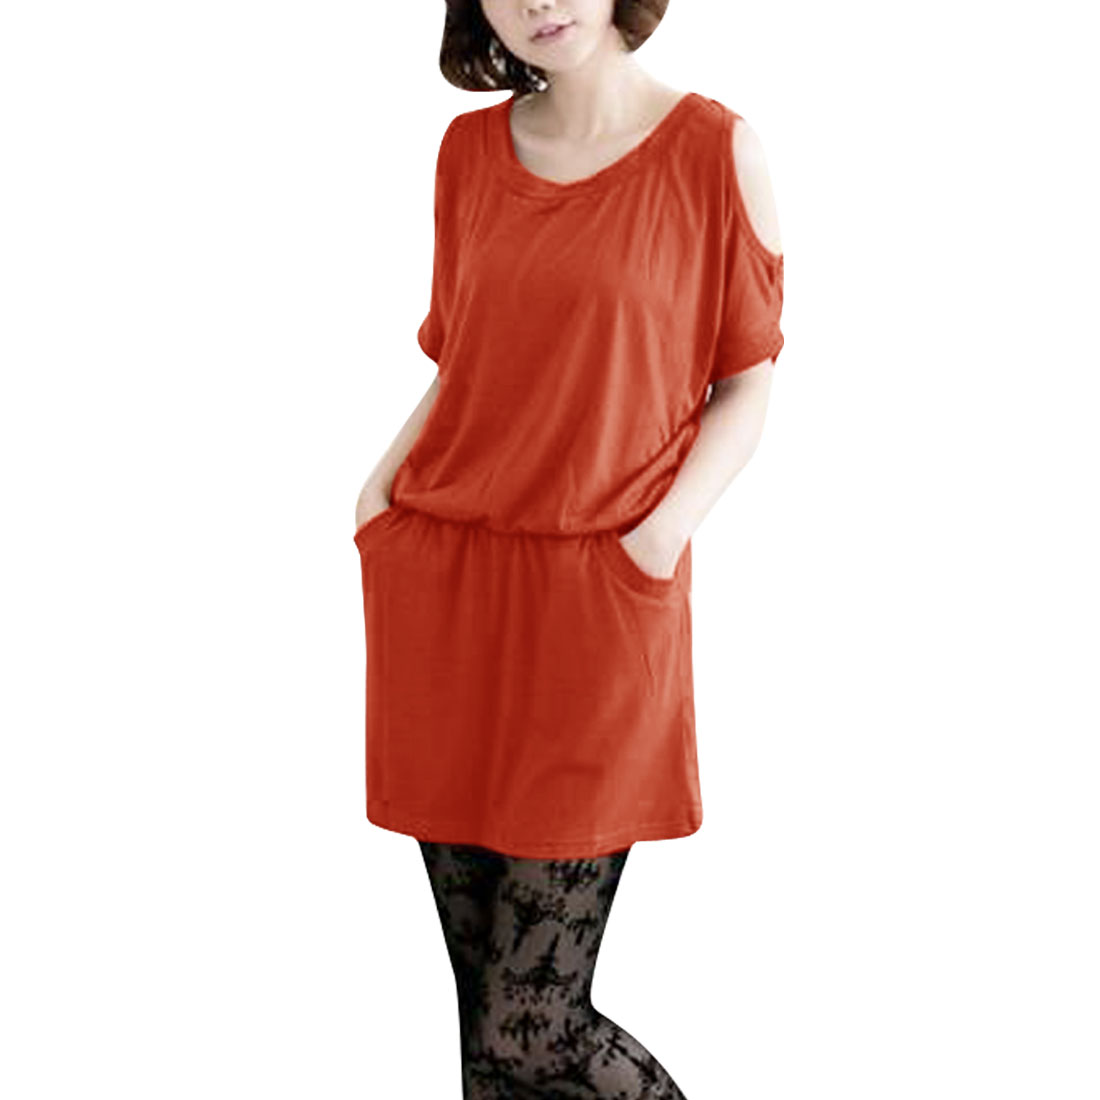 Ladies Round Neck Short Sleeve Slant Pockets Dress Orange Red S